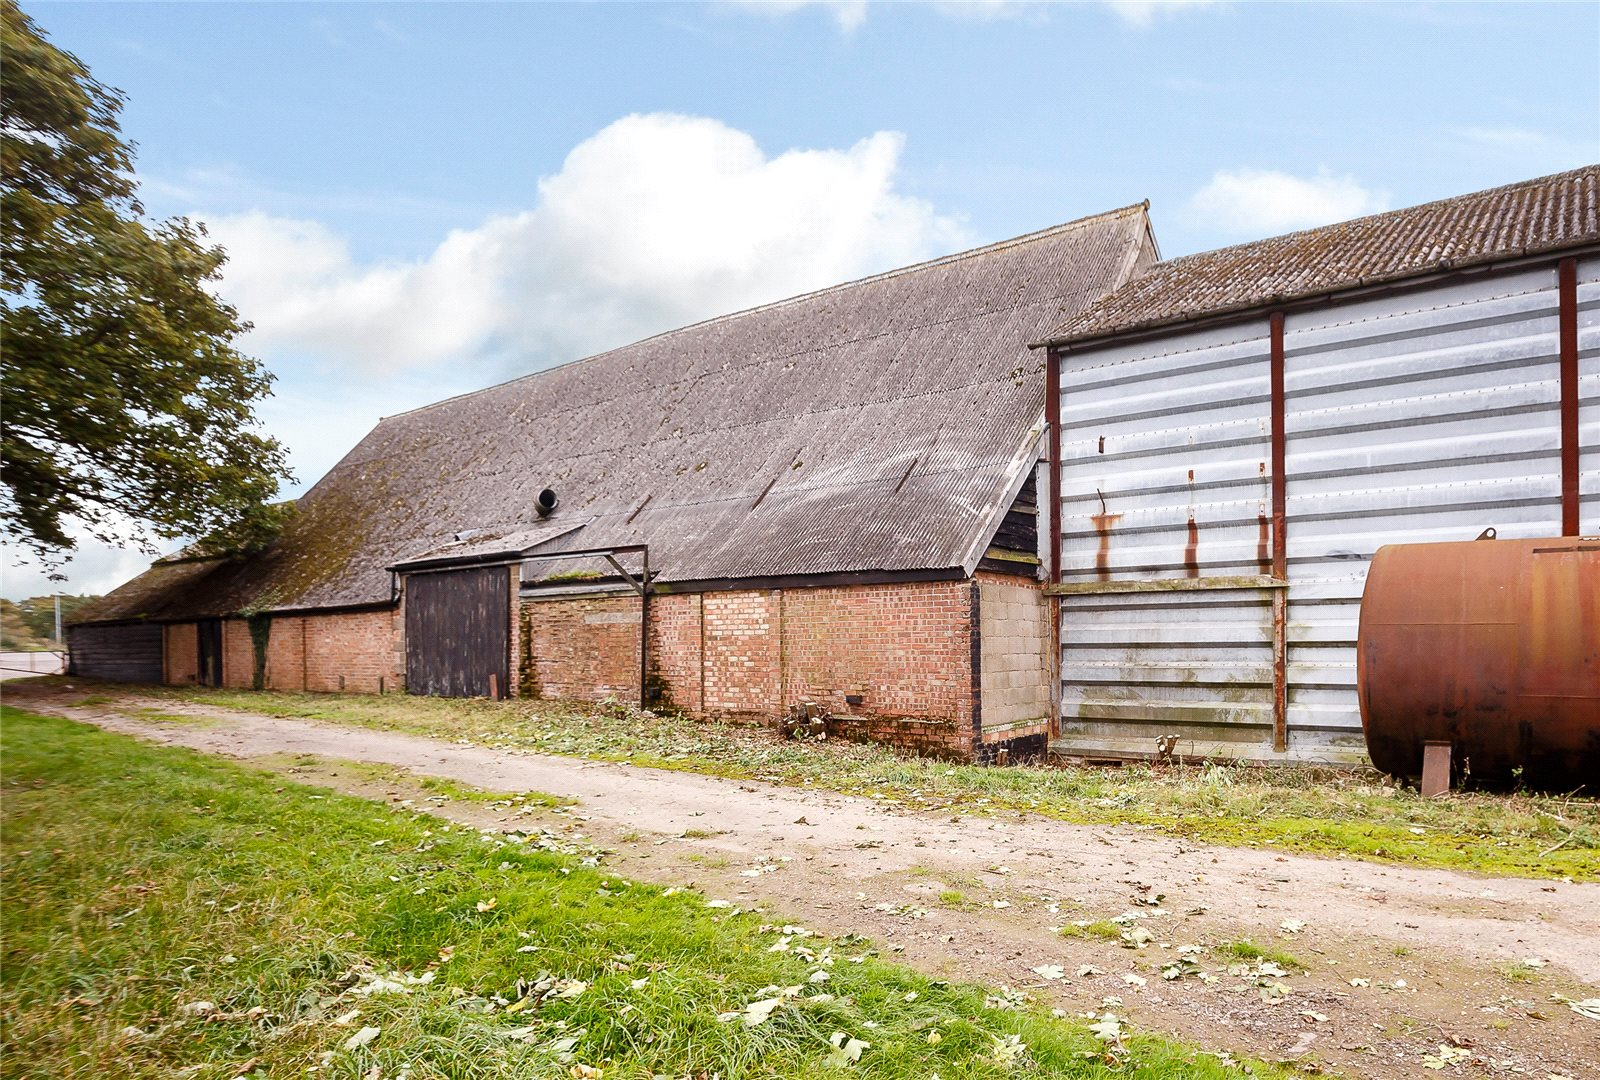 Ferme / Ranch / Plantation pour l Vente à Wilbury Farm, Hitchin Road, Arlesey, Bedfordshire, SG15 Arlesey, Angleterre